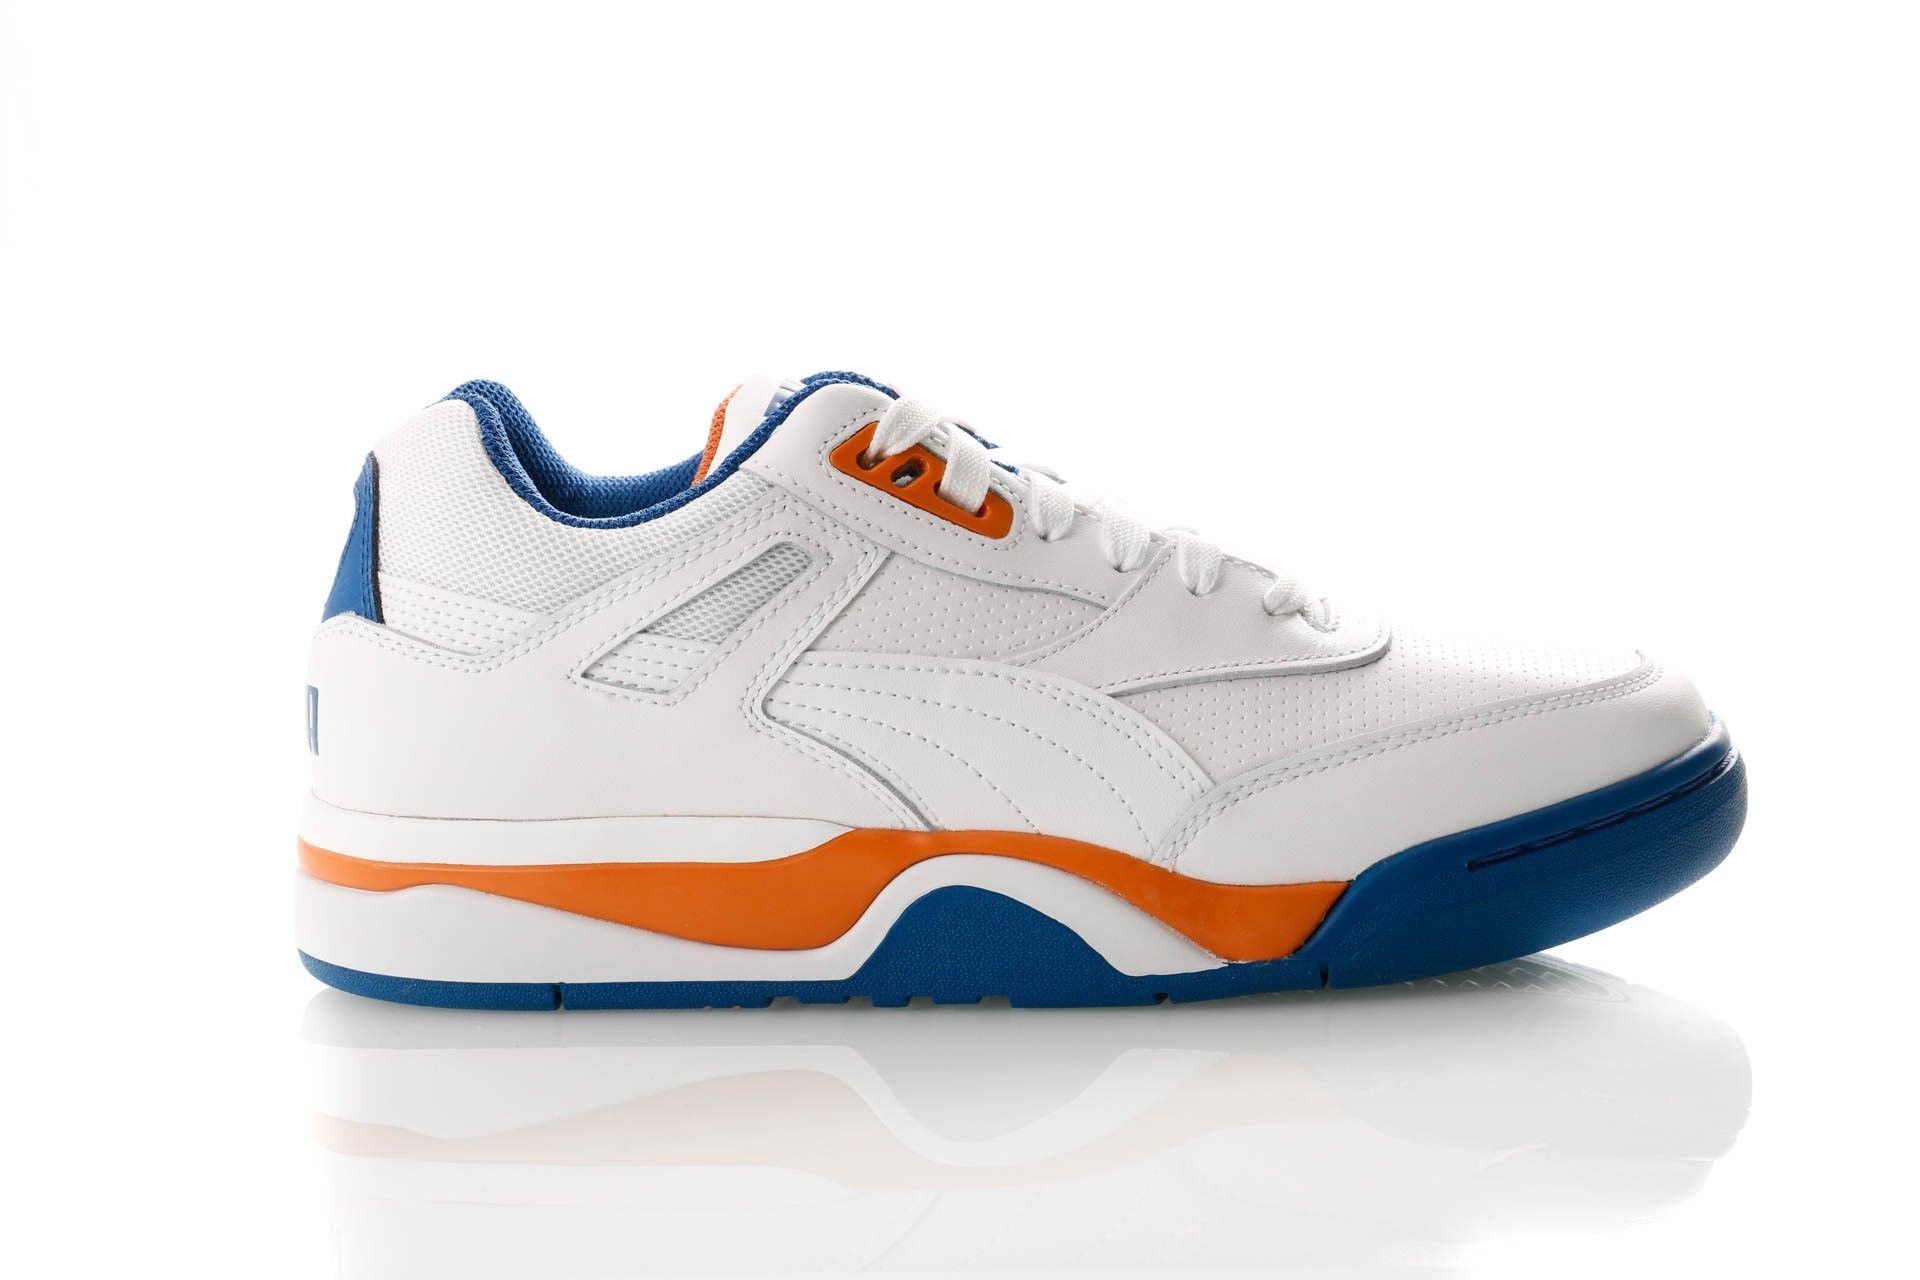 Afbeelding van Puma Palace Guard 370063 05 Sneakers Puma White-Jaffa Orange-Galaxy Blue